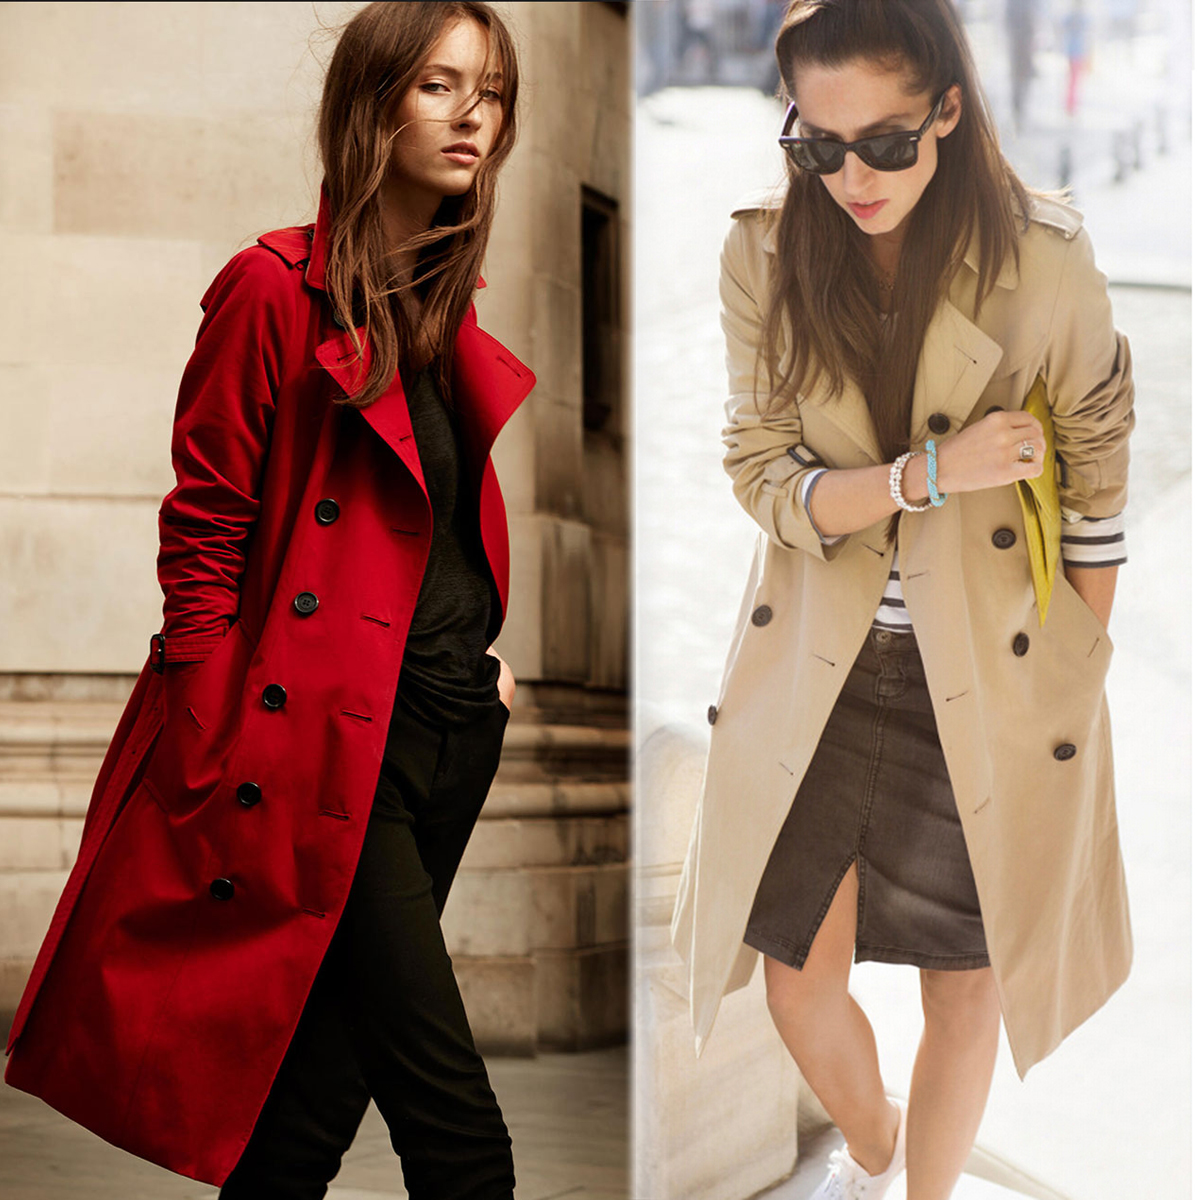 JAZZEVAR 2019 Autumn New High Fashion Brand Woman Classic Double Breasted Trench Coat Waterproof Raincoat Business